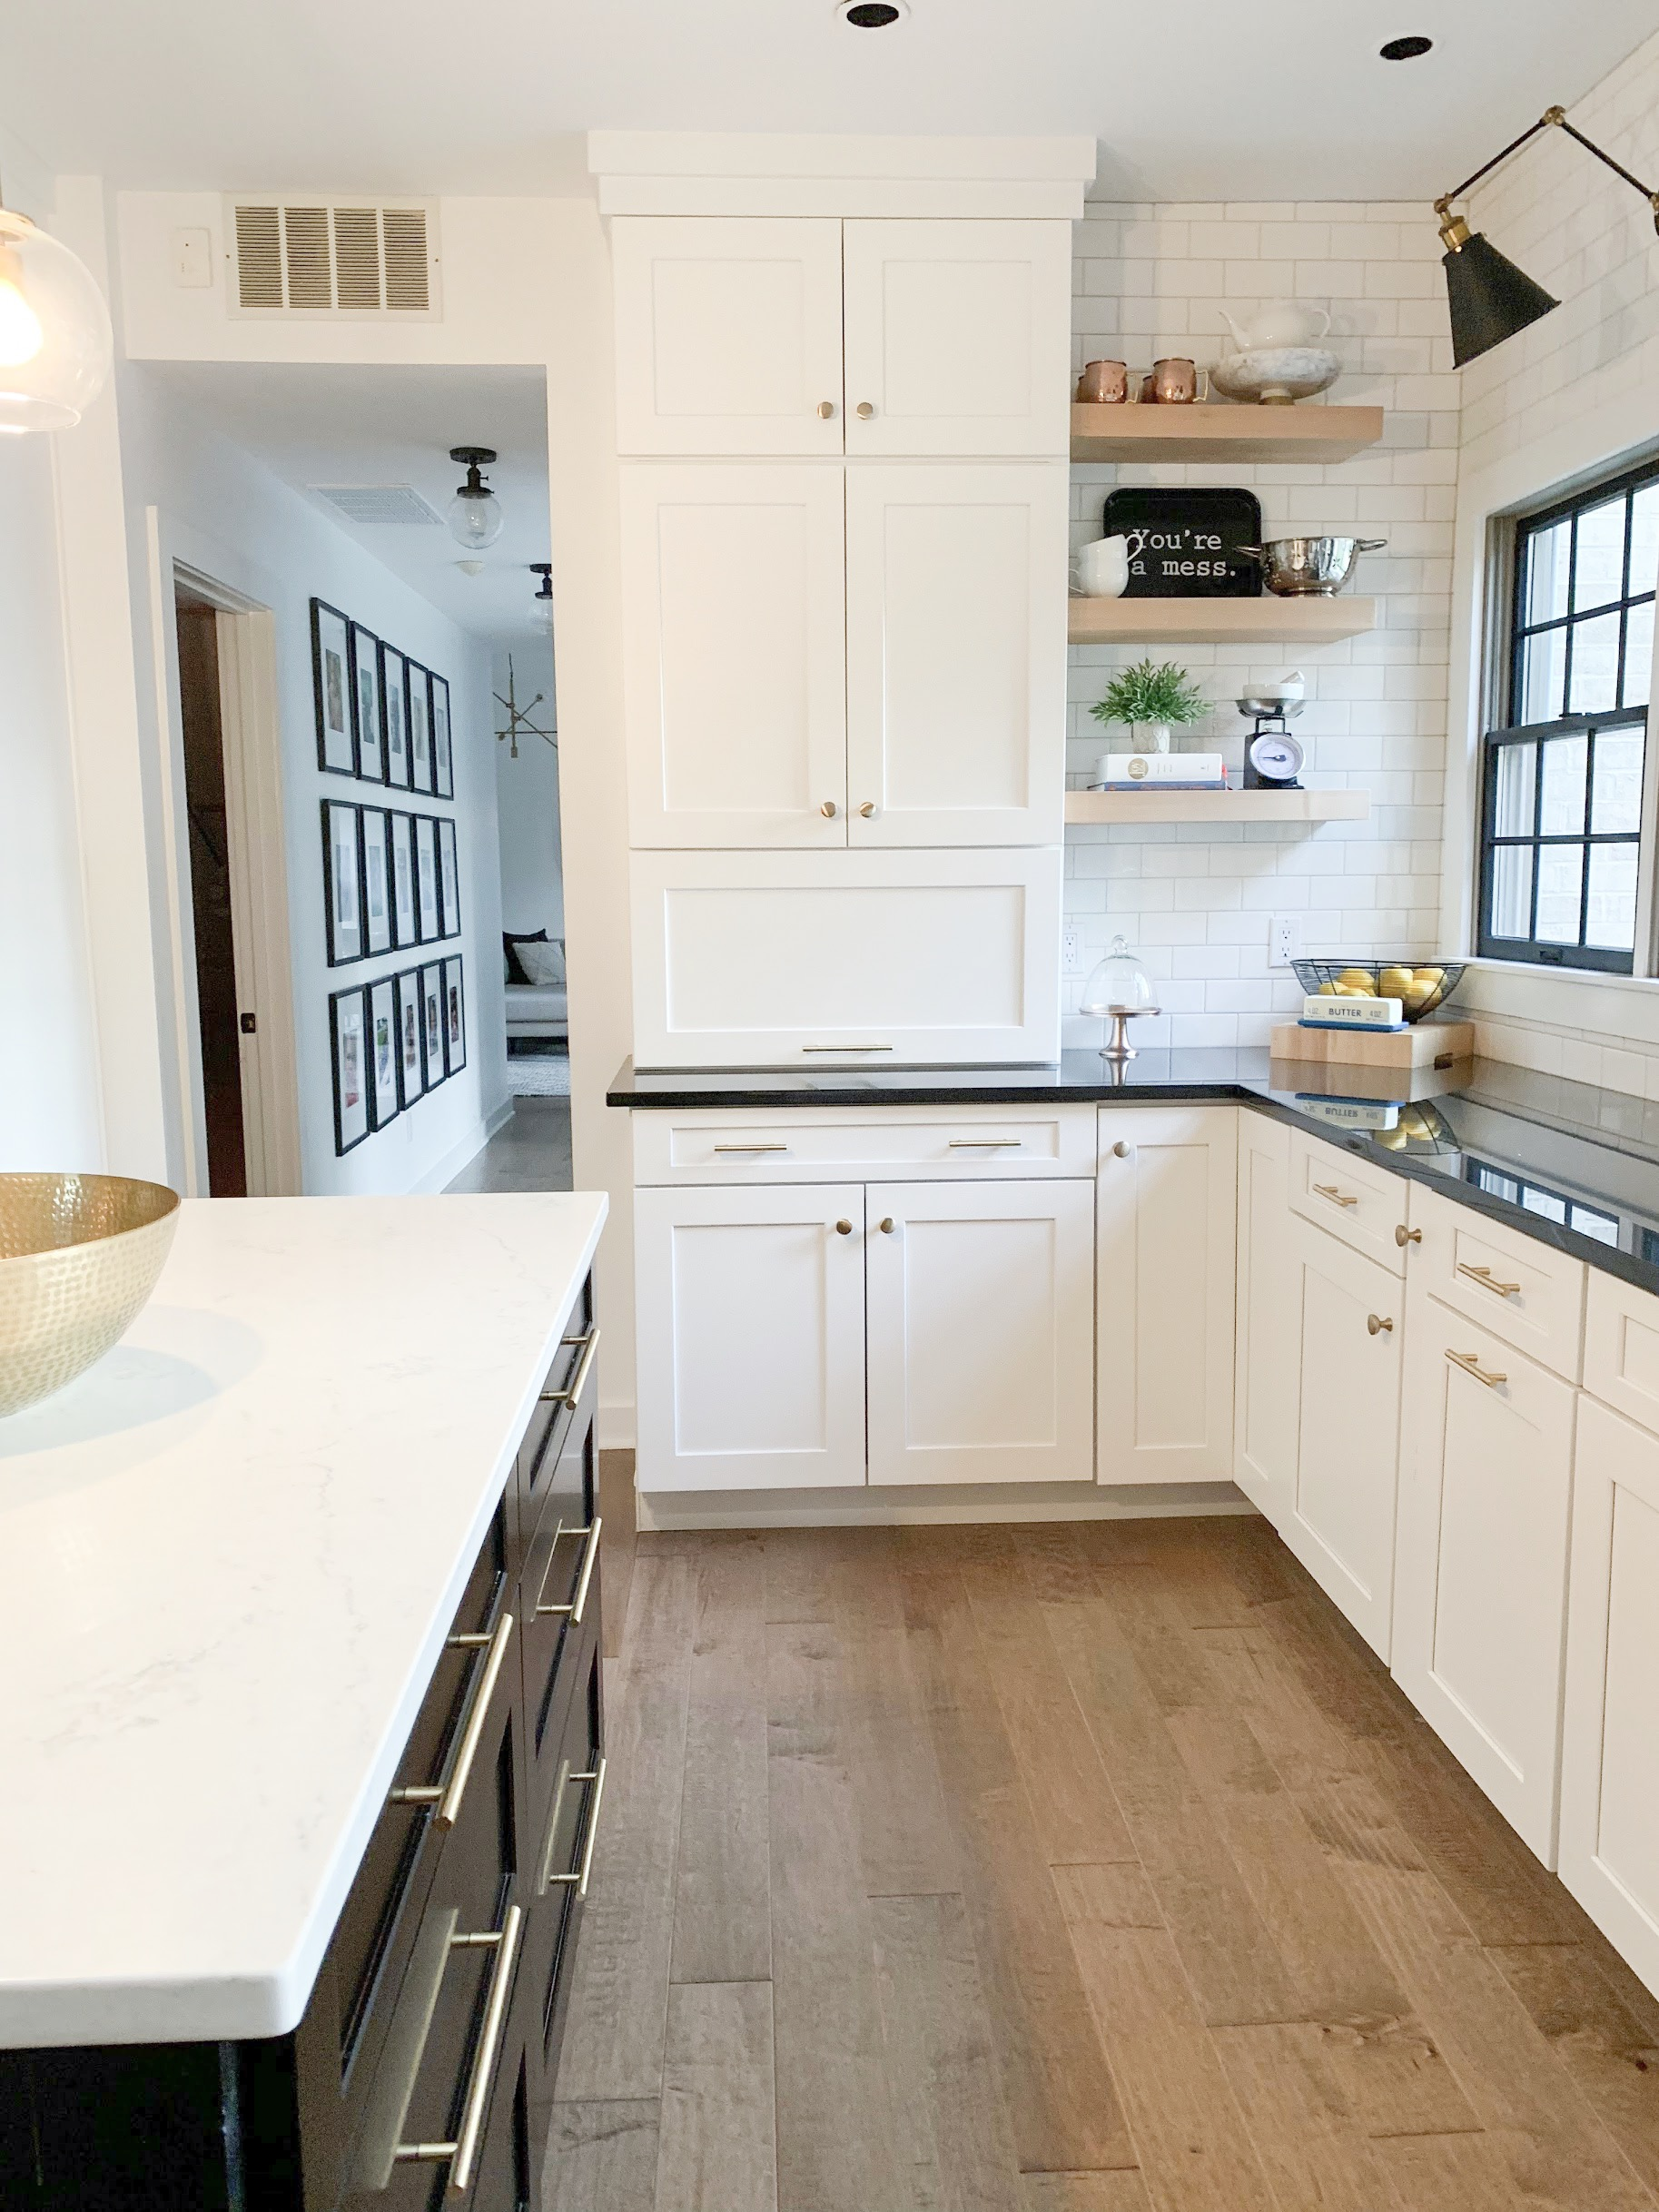 black and white kitchen with wood floors and white subway tile